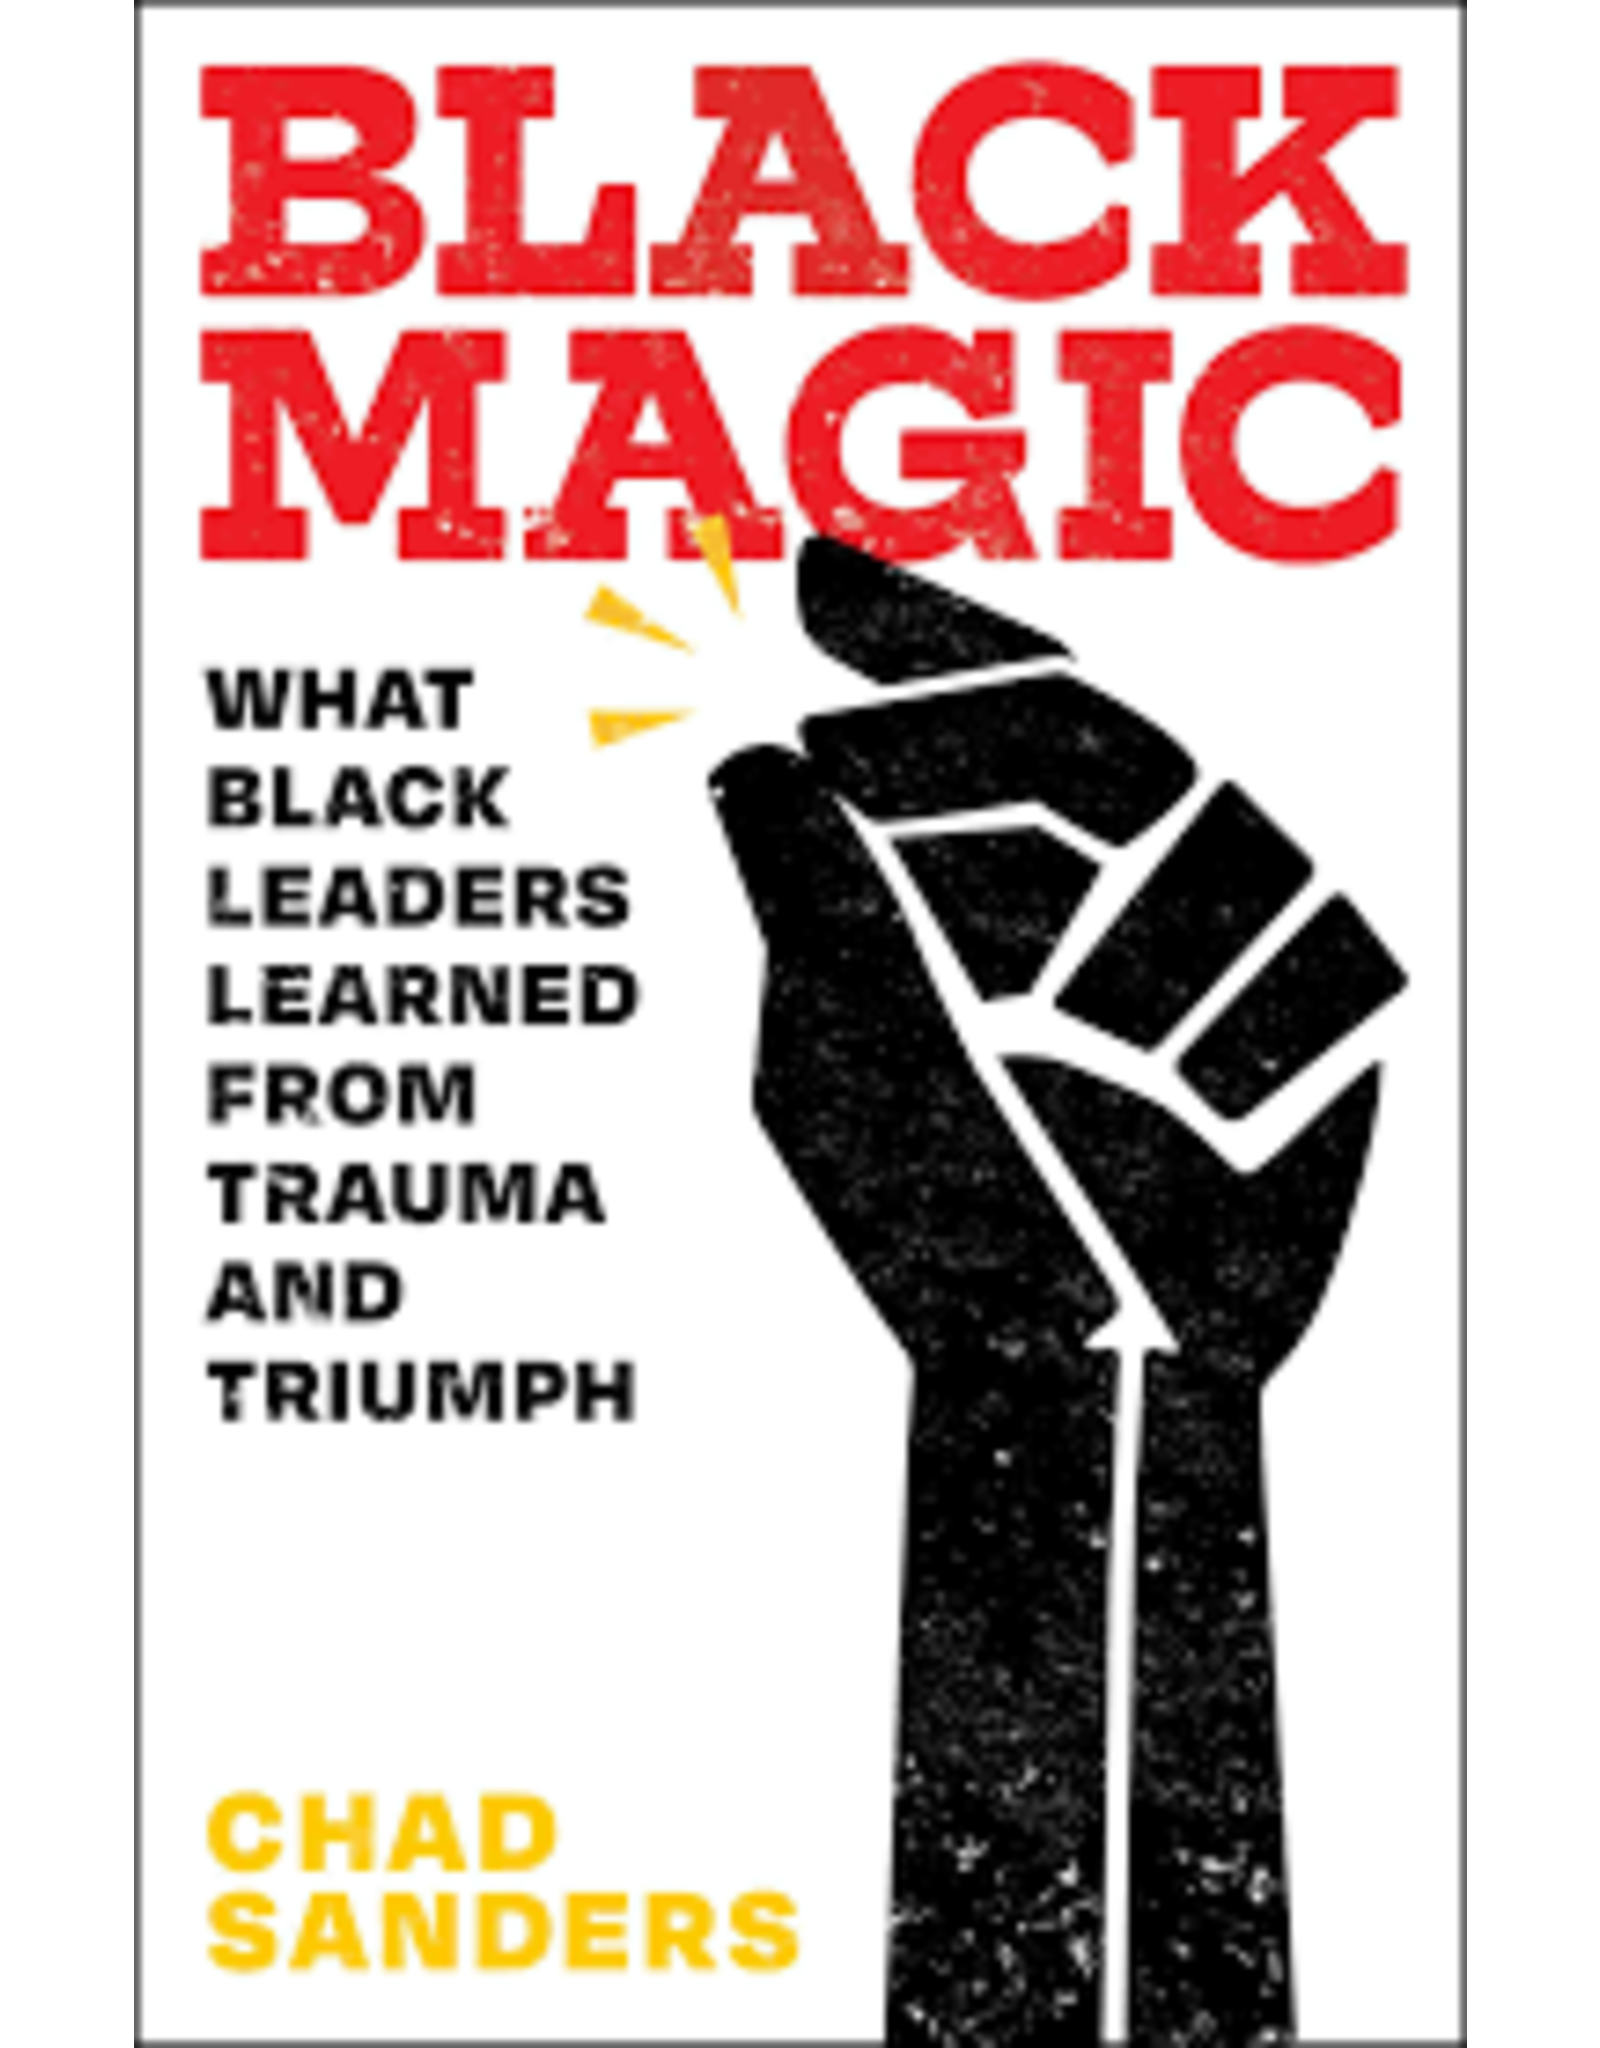 Books Black Magic: What Black Leaders Learned From Trauma and Triumph by Chad Sanders